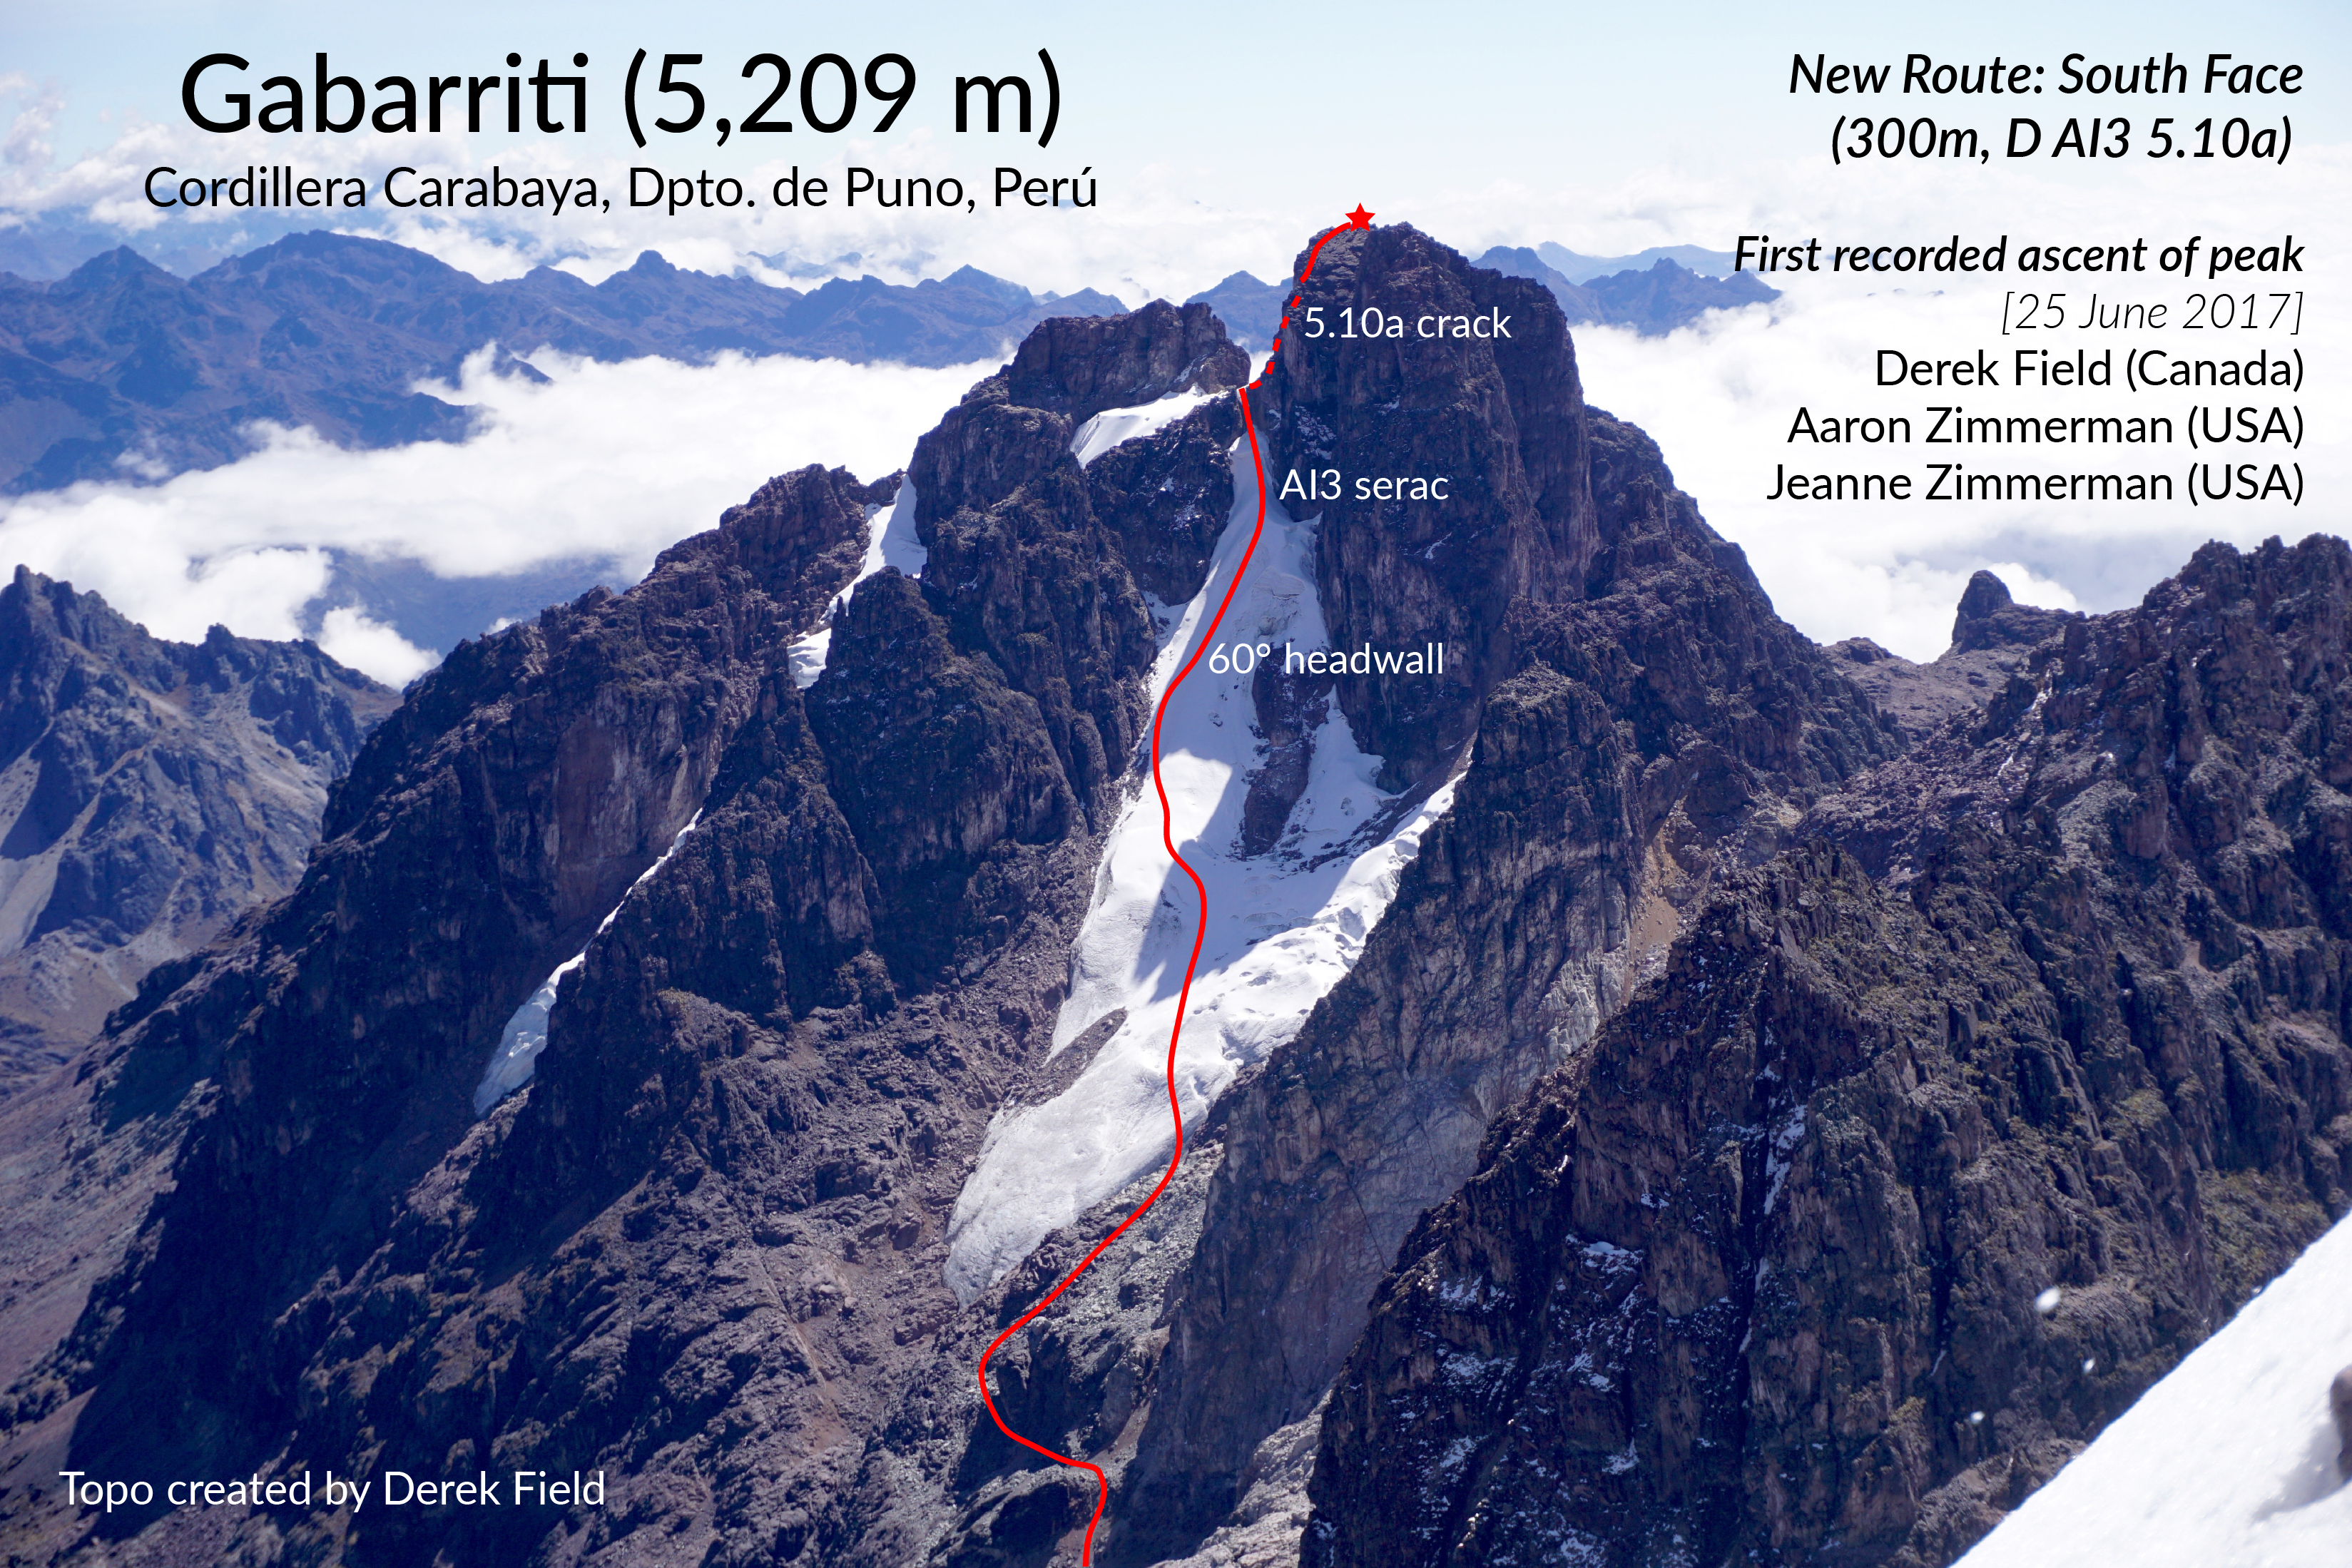 Route topo for the South Face of Gabarriti.